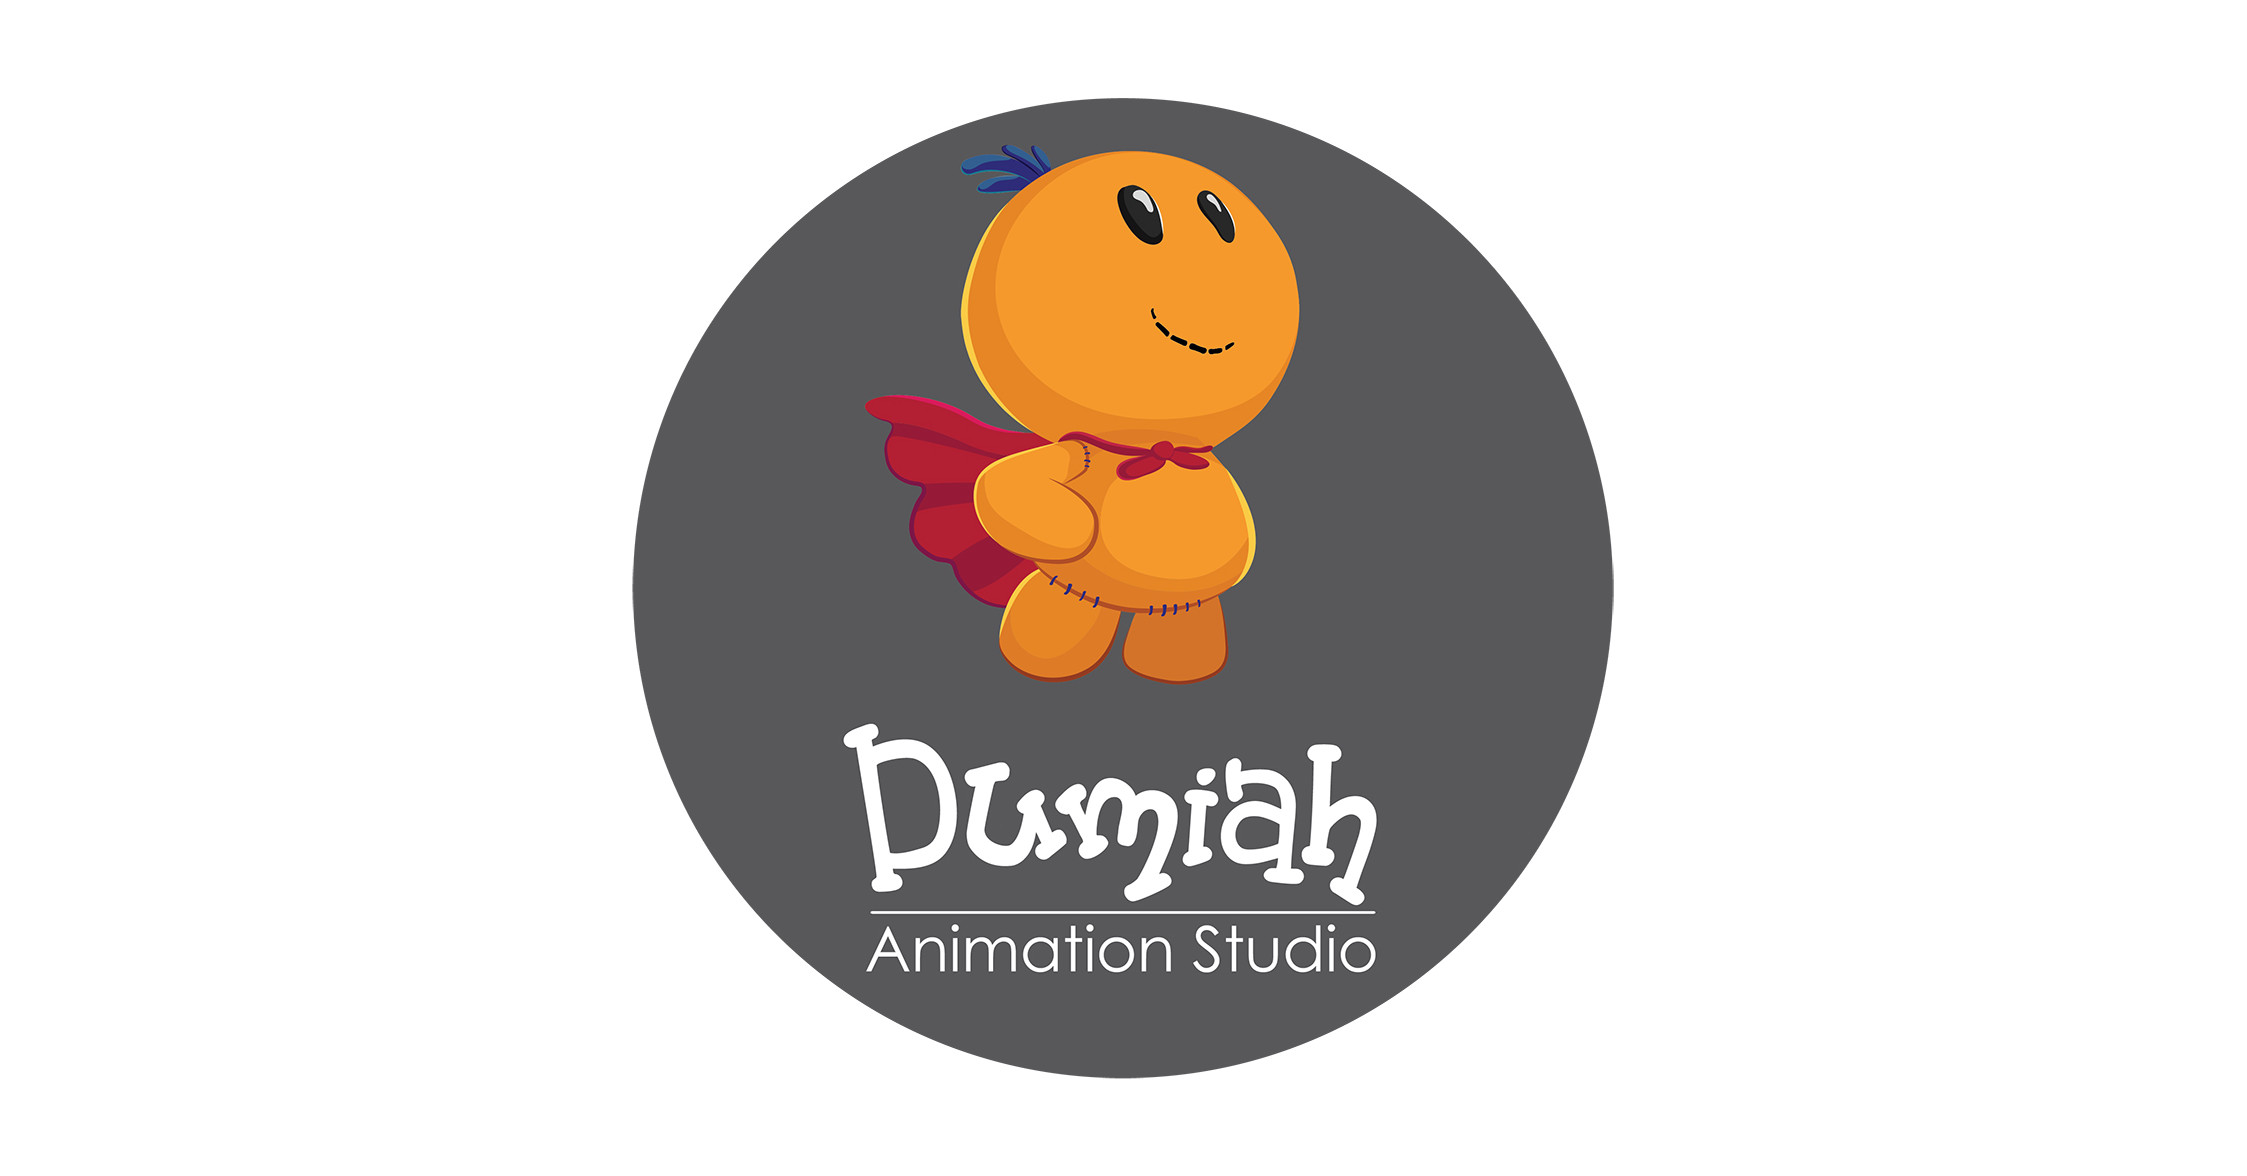 Job: Marketing manager (B2B Business to Business) at Dumiah animation studio in Cairo, Egypt